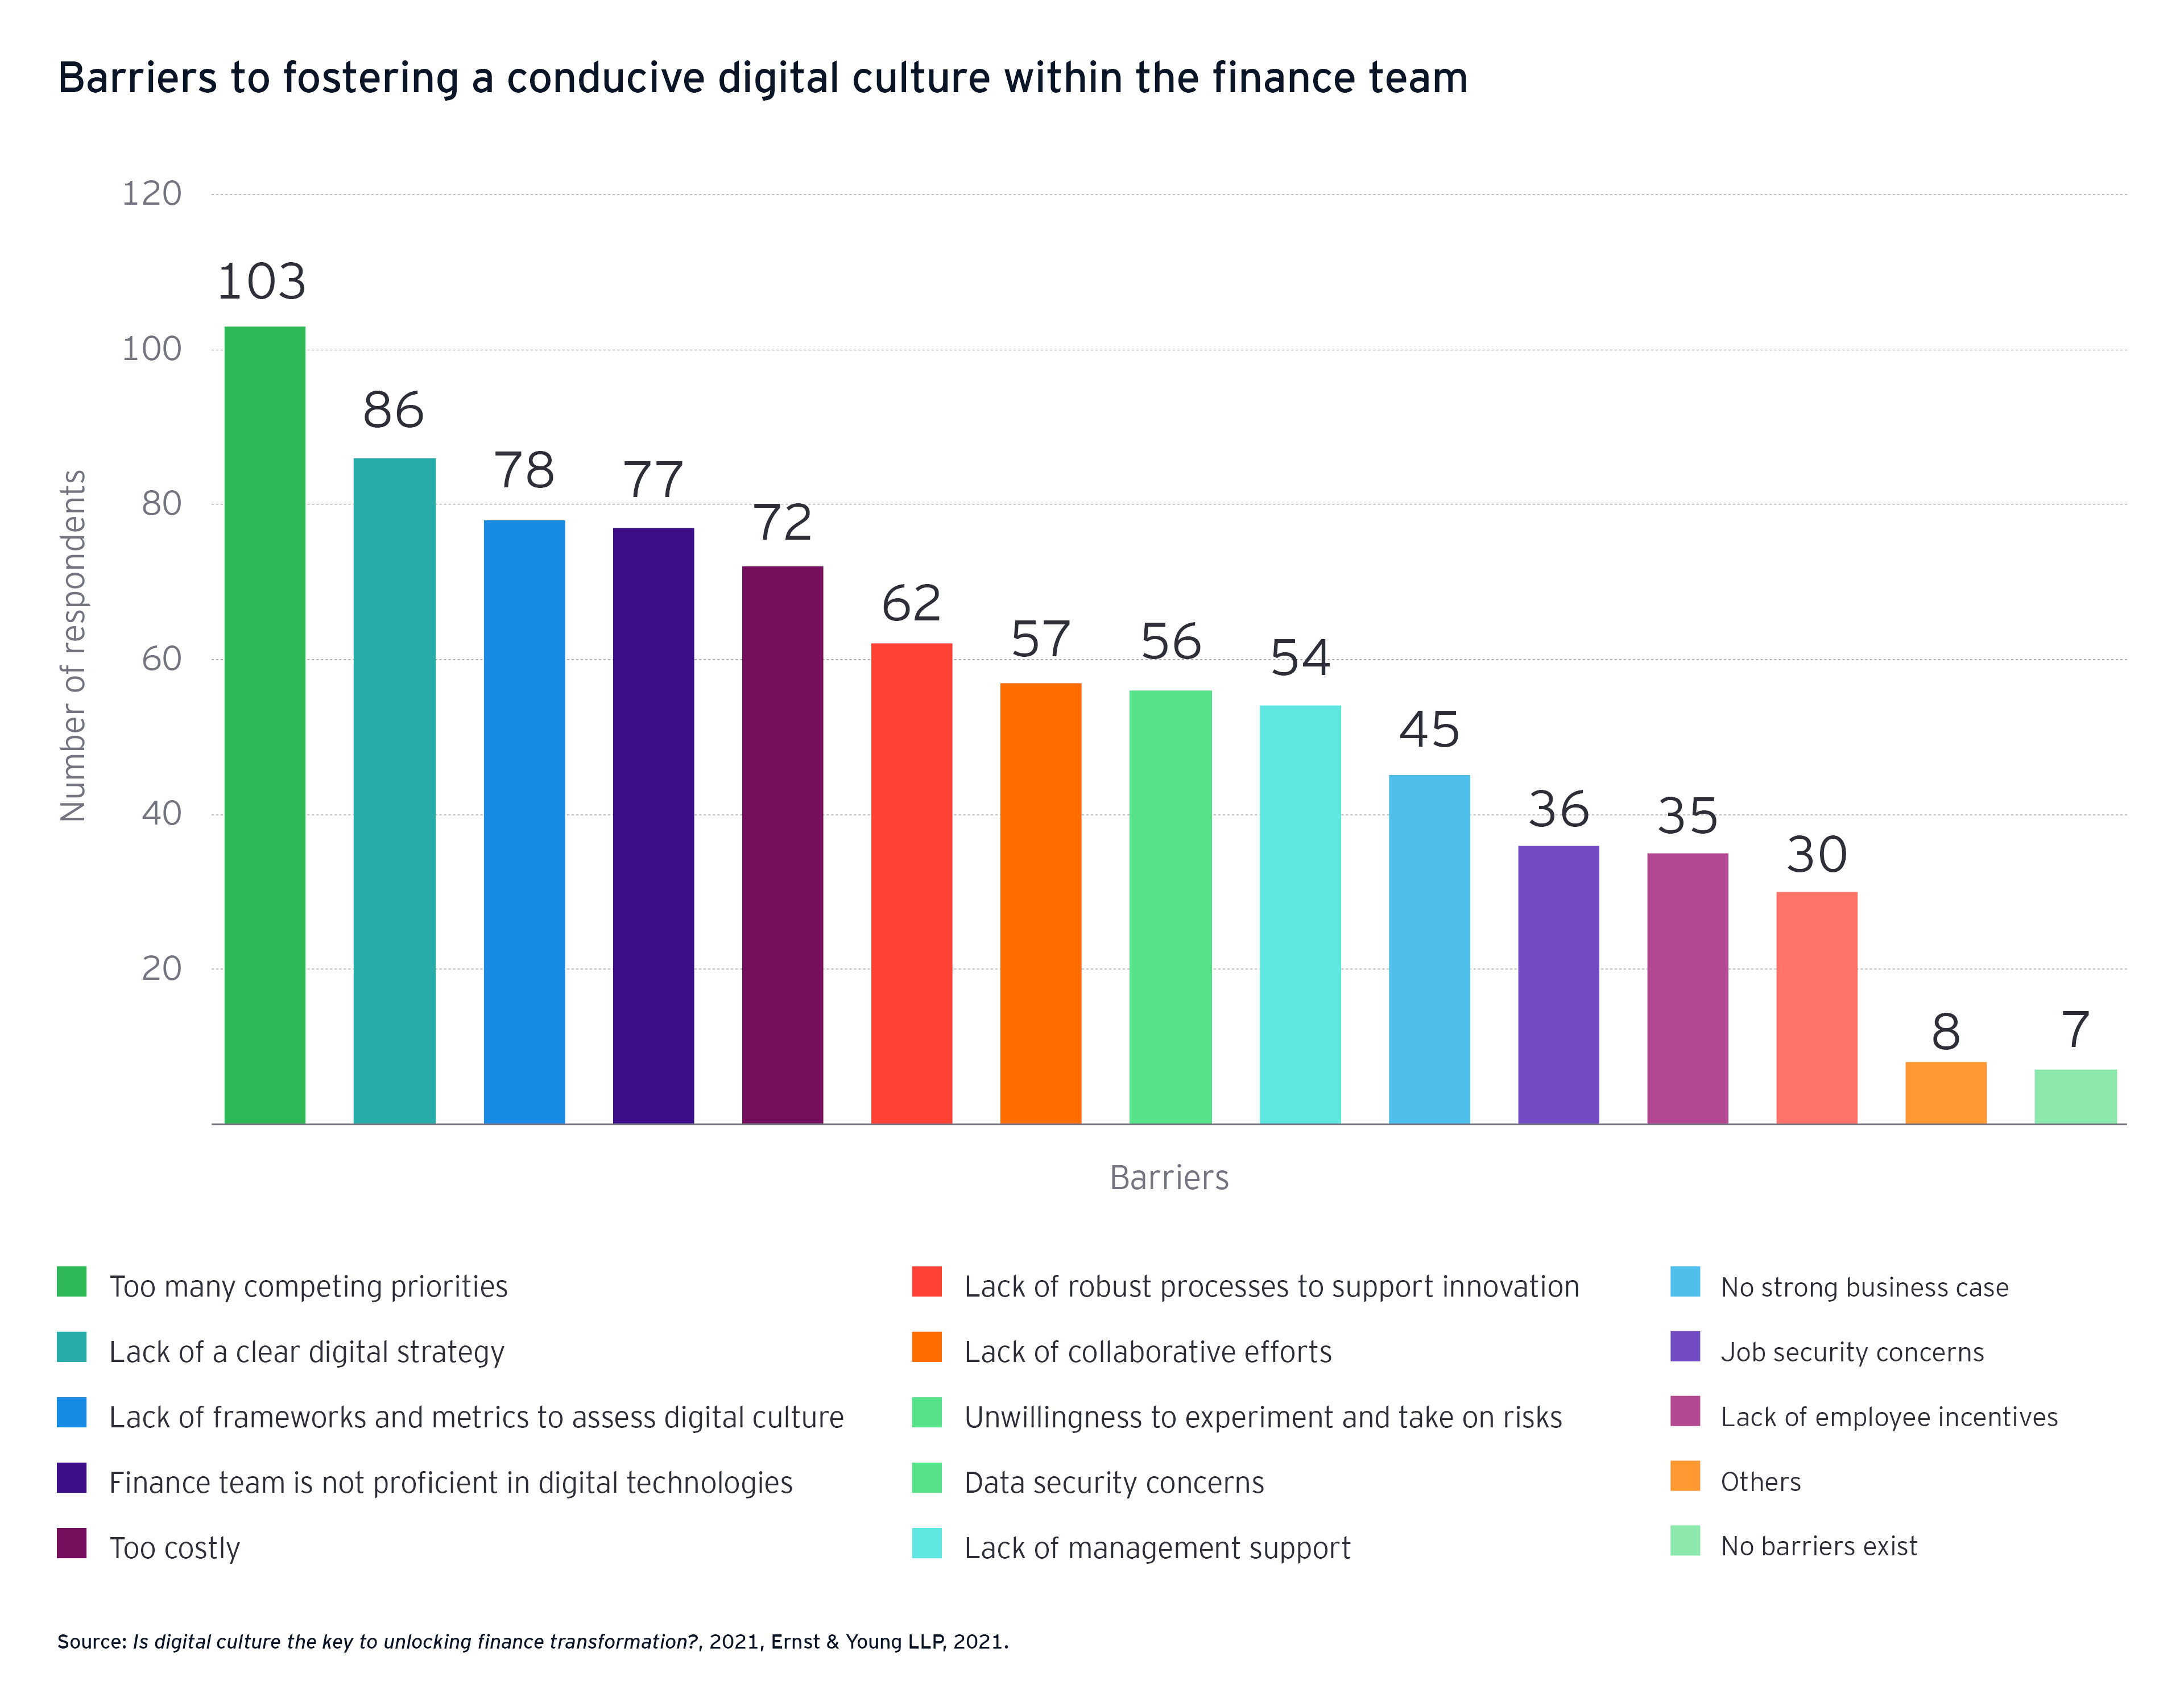 Barriers to fostering a conducive digital culture within the finance team